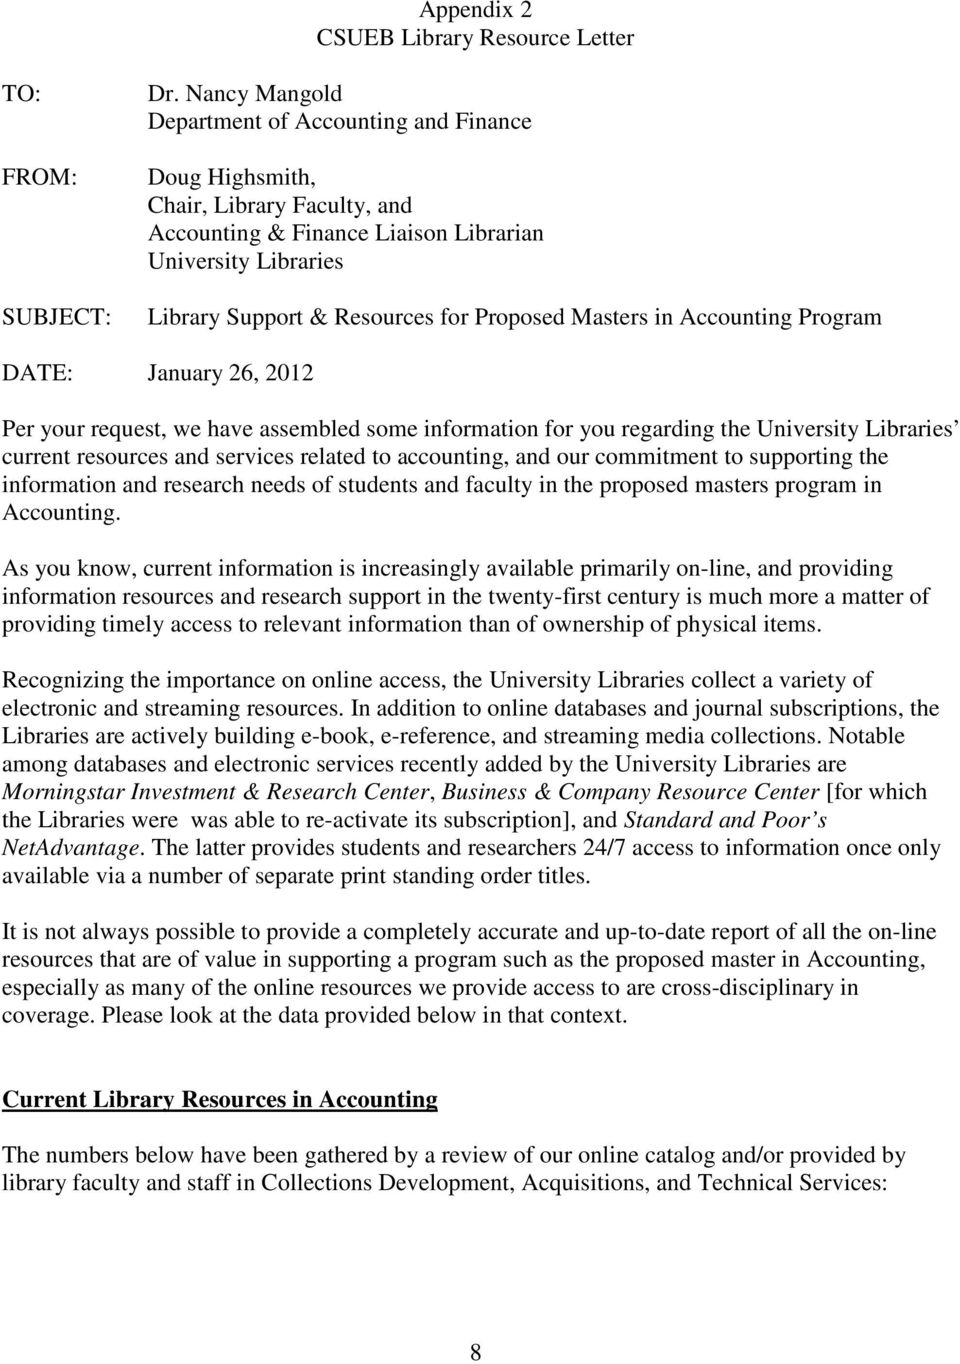 Masters in Accounting Program DATE: January 26, 2012 Per your request, we have assembled some information for you regarding the University Libraries current resources and services related to